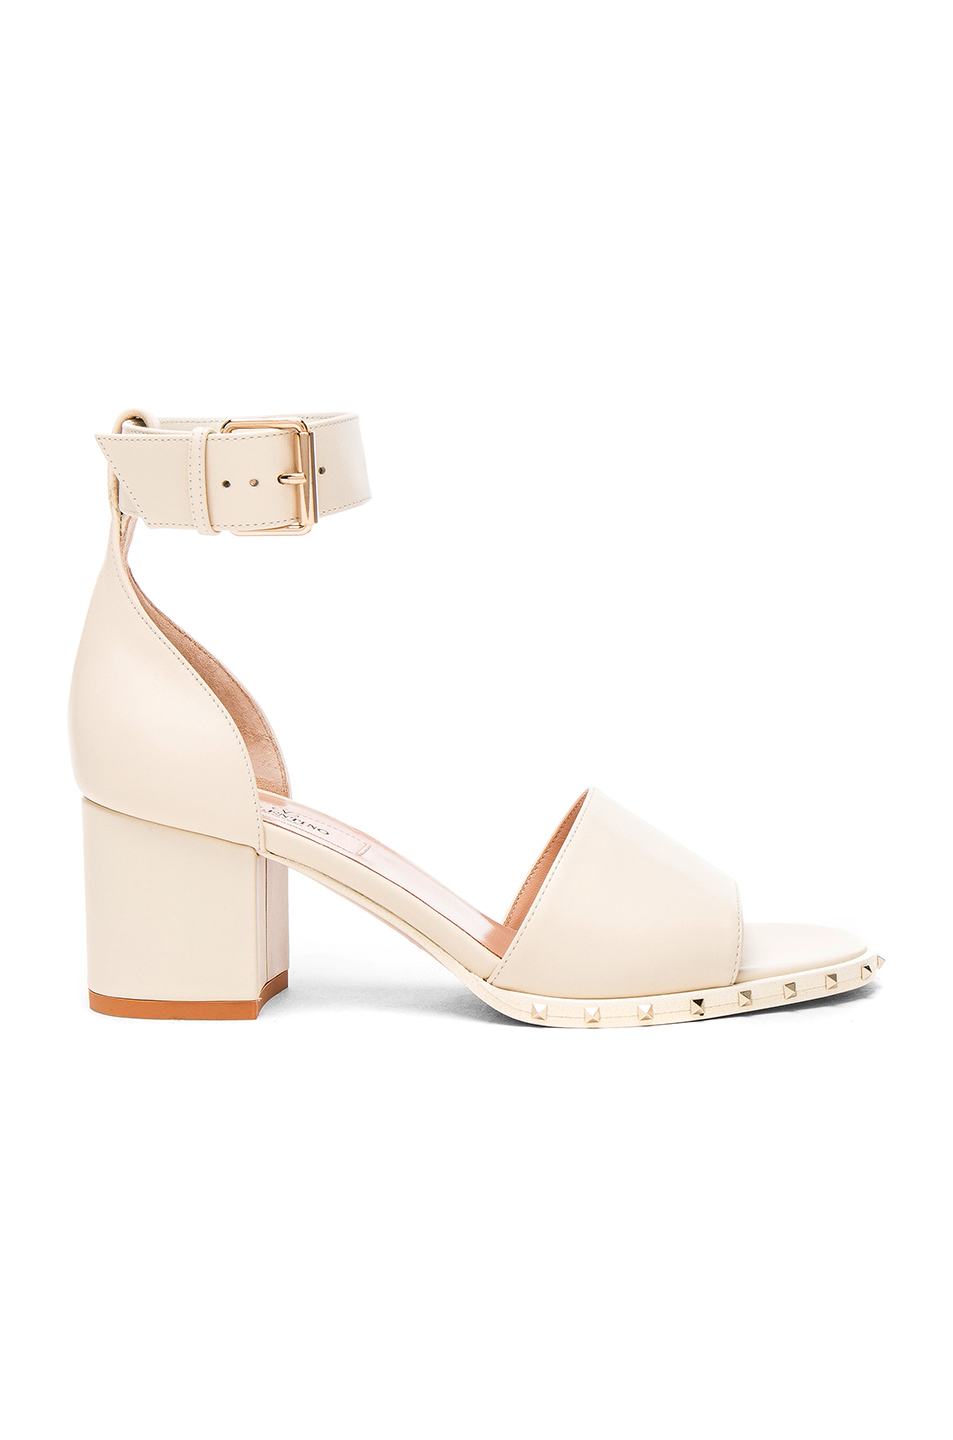 Valentino Leather Soul Rockstud Sandals in White